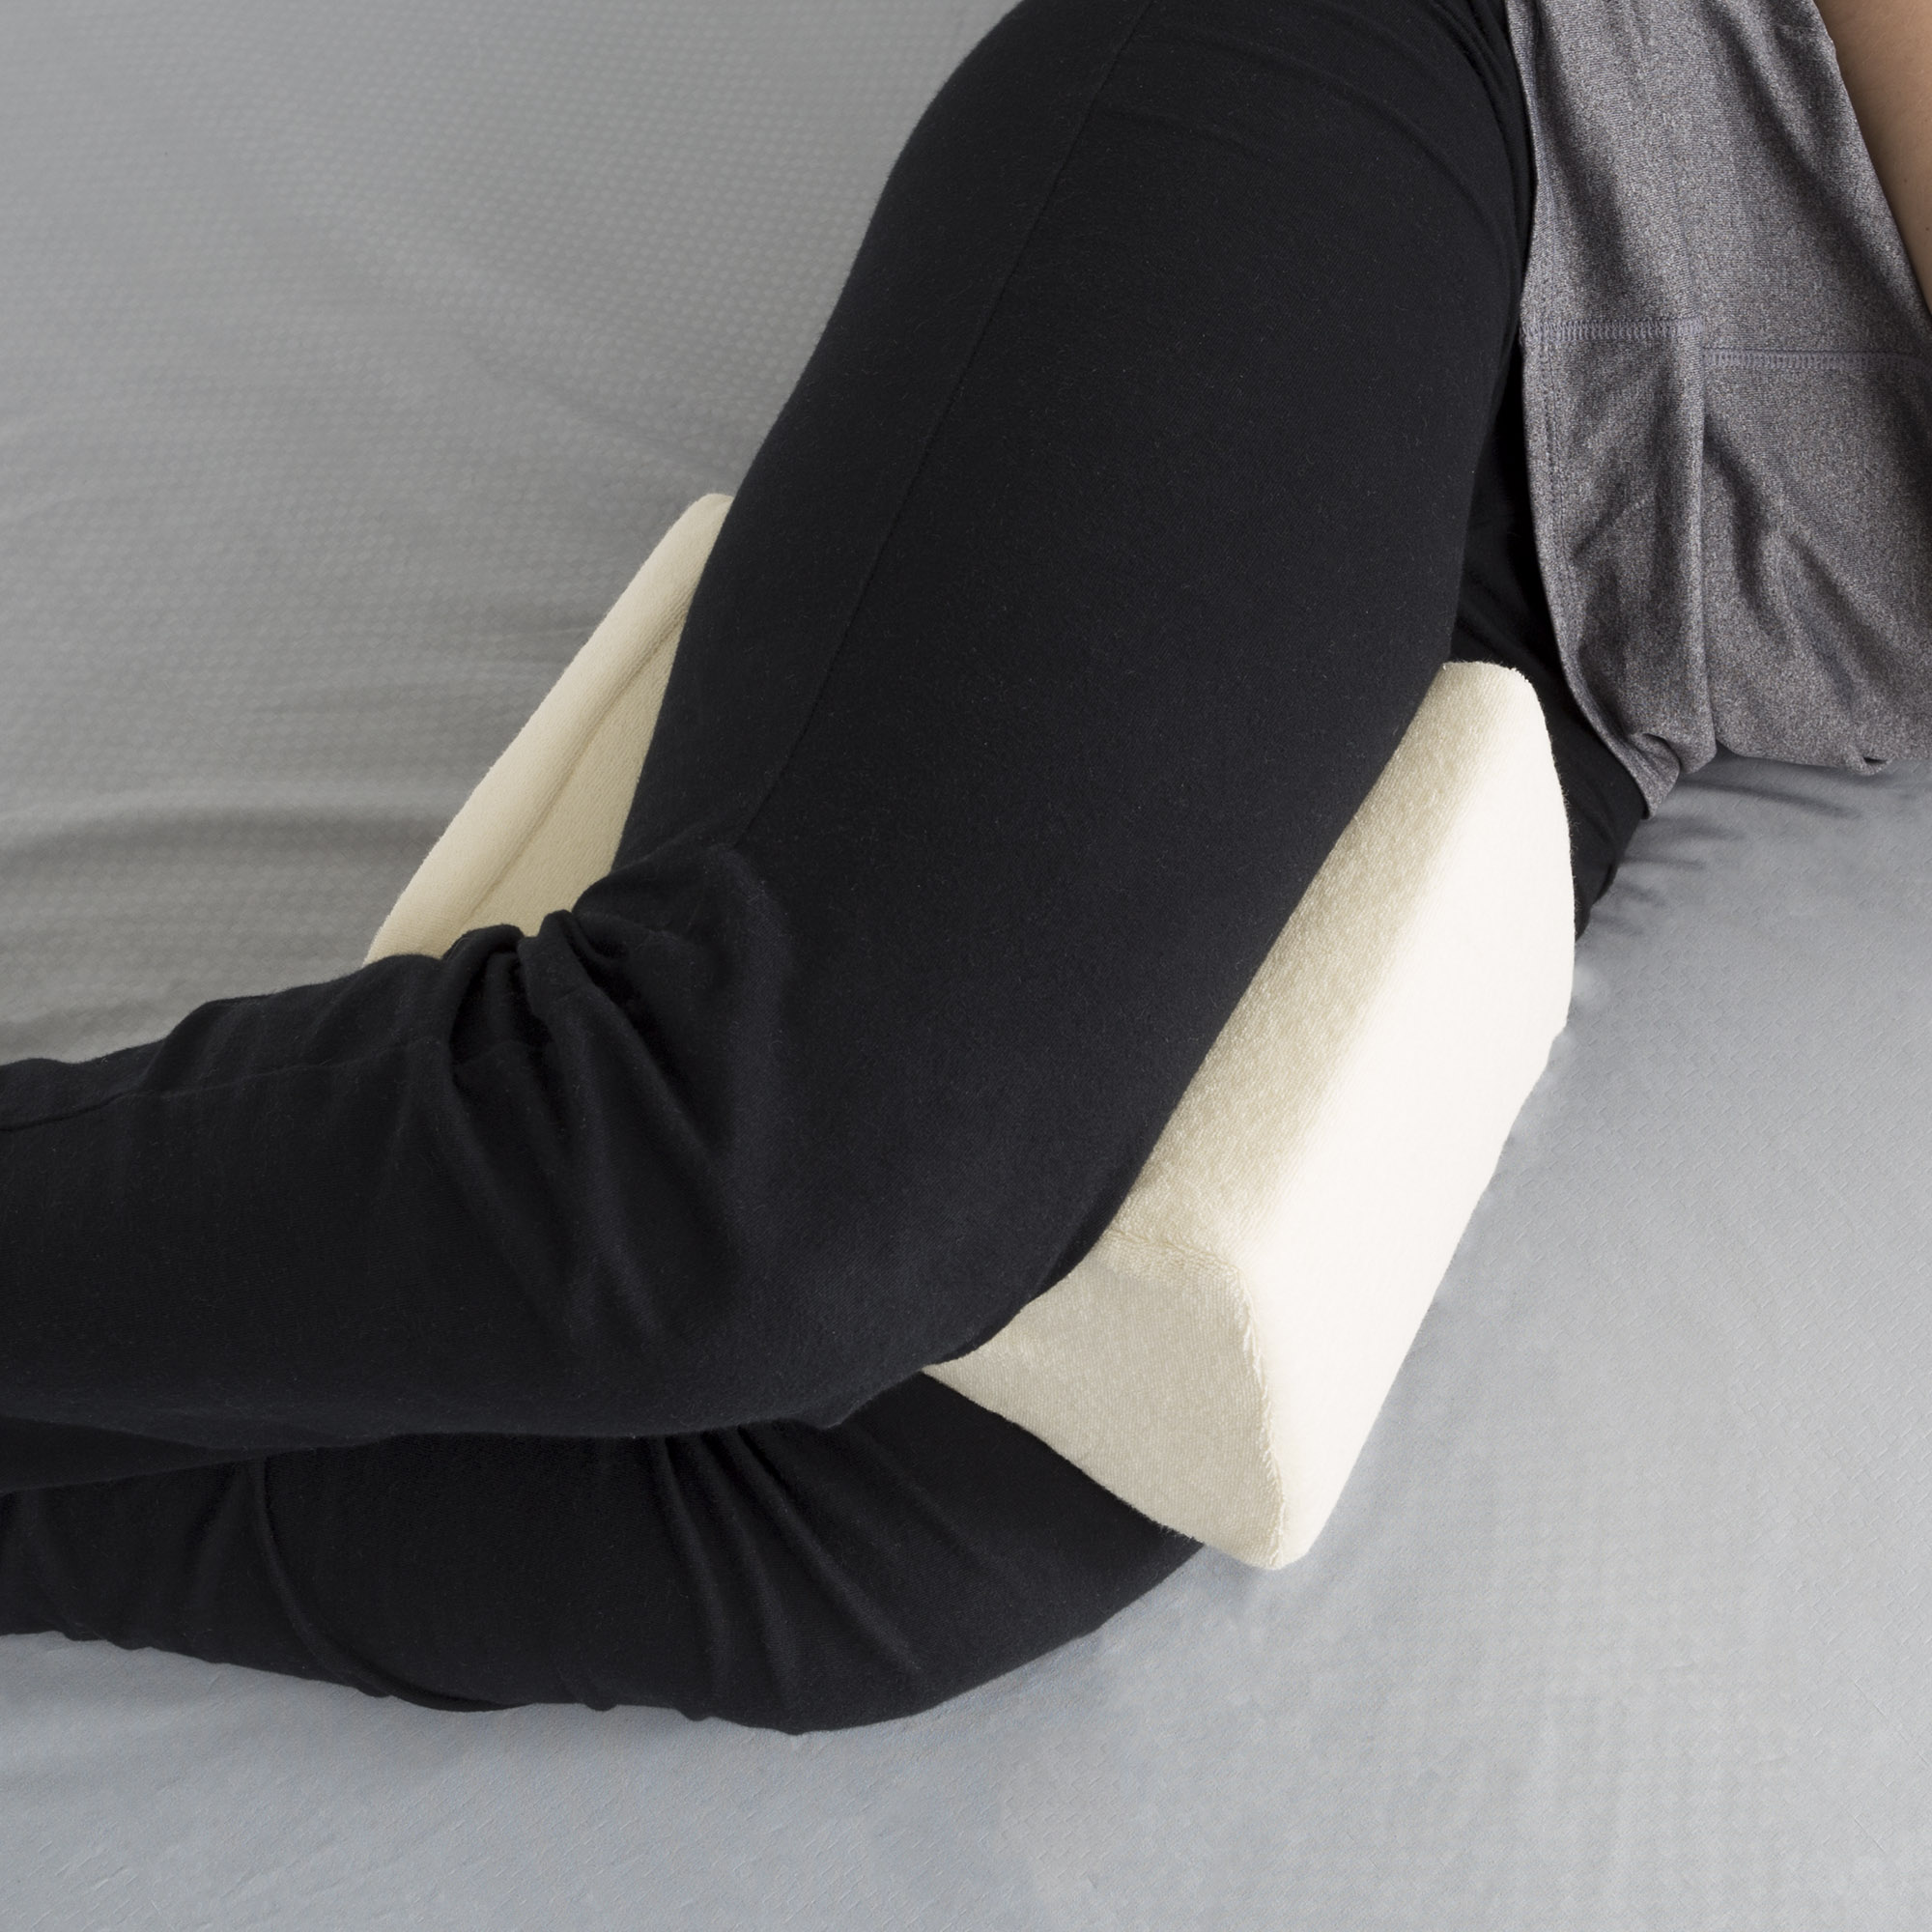 contoured orthopedic memory foam leg pillow by somerset home